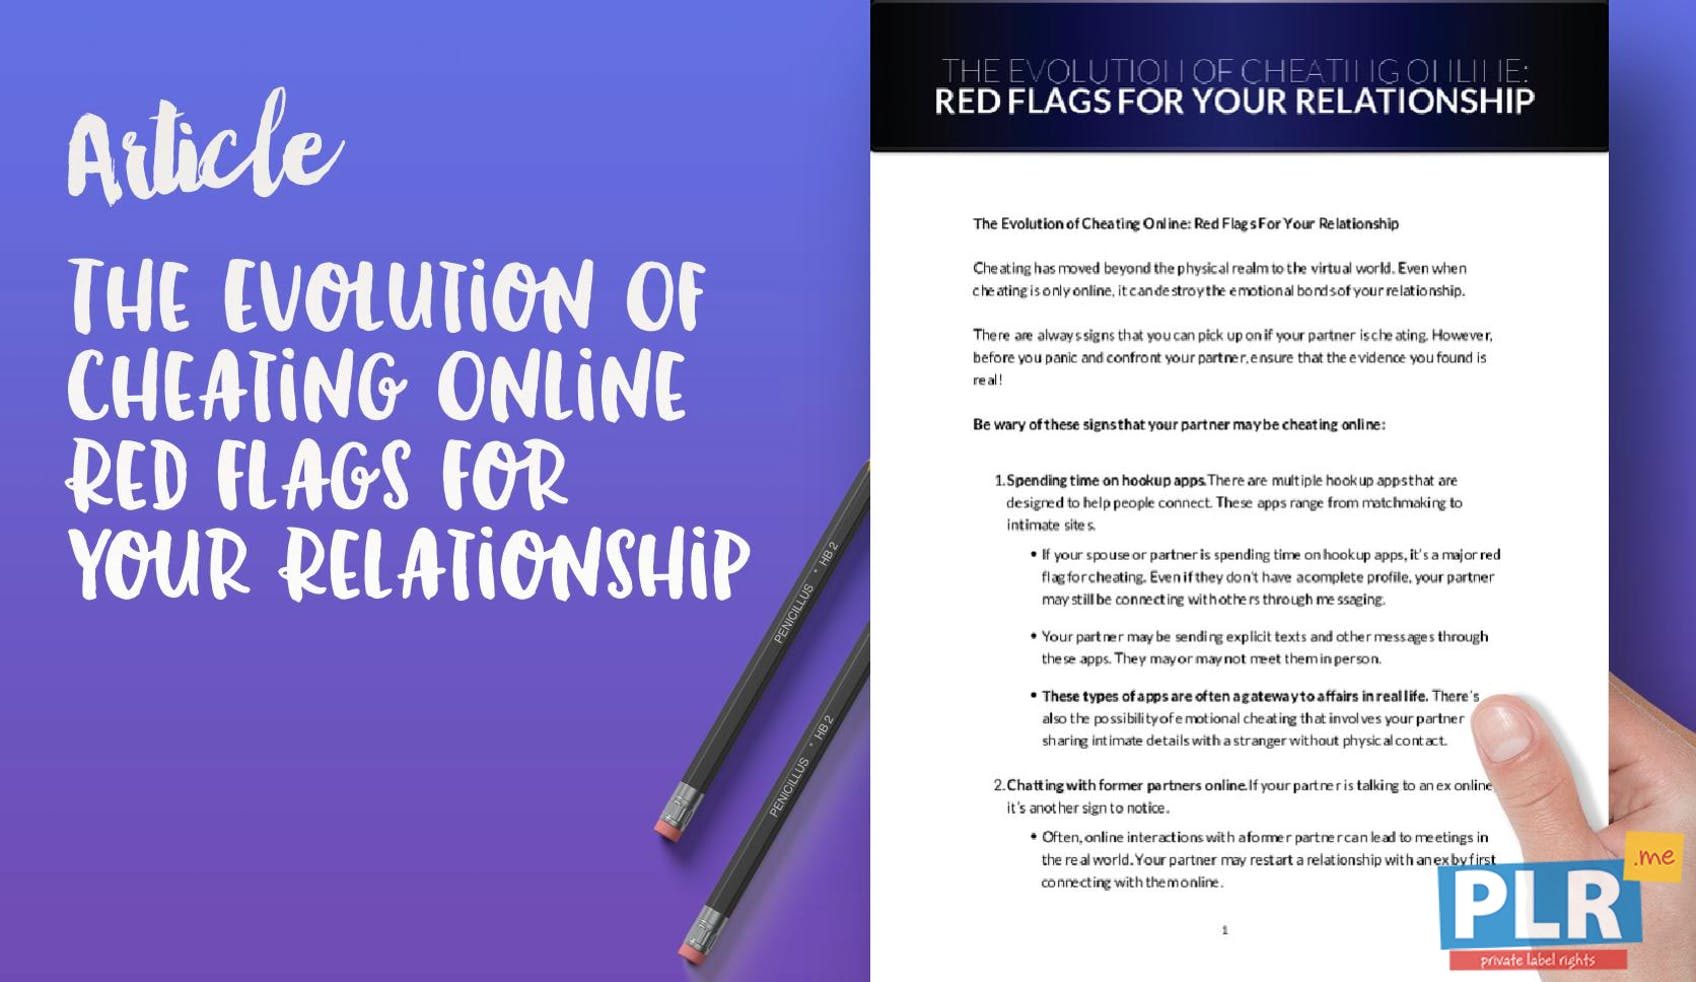 The Evolution Of Cheating Online Red Flags For Your Relationship